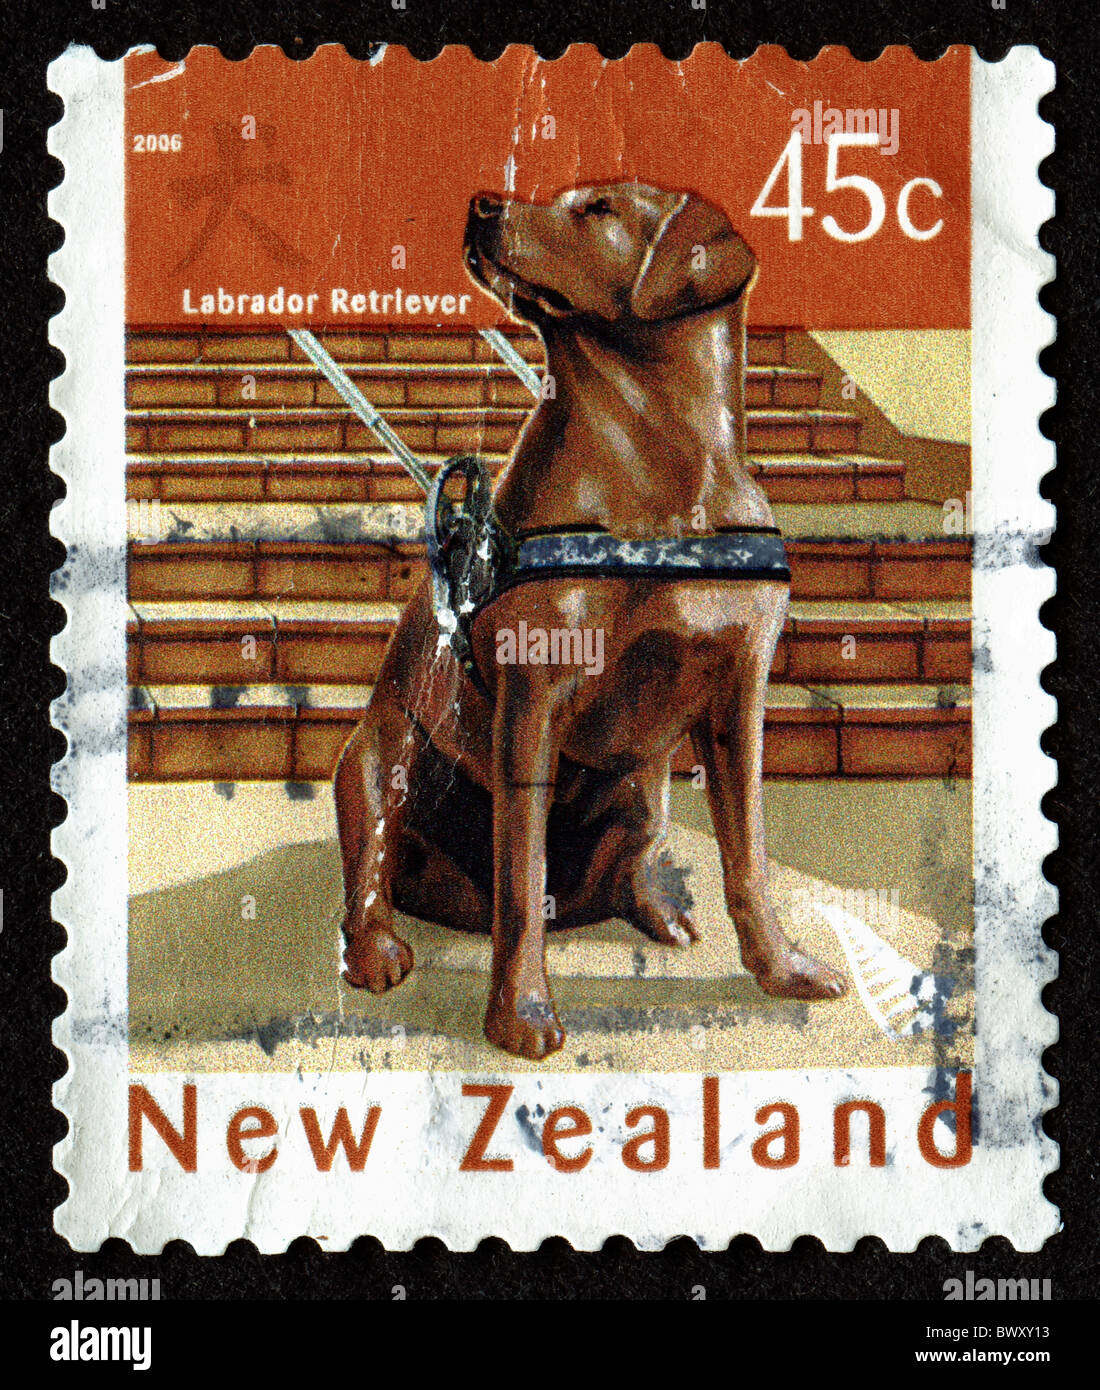 Vintage postage stamp from New Zealand - Stock Image